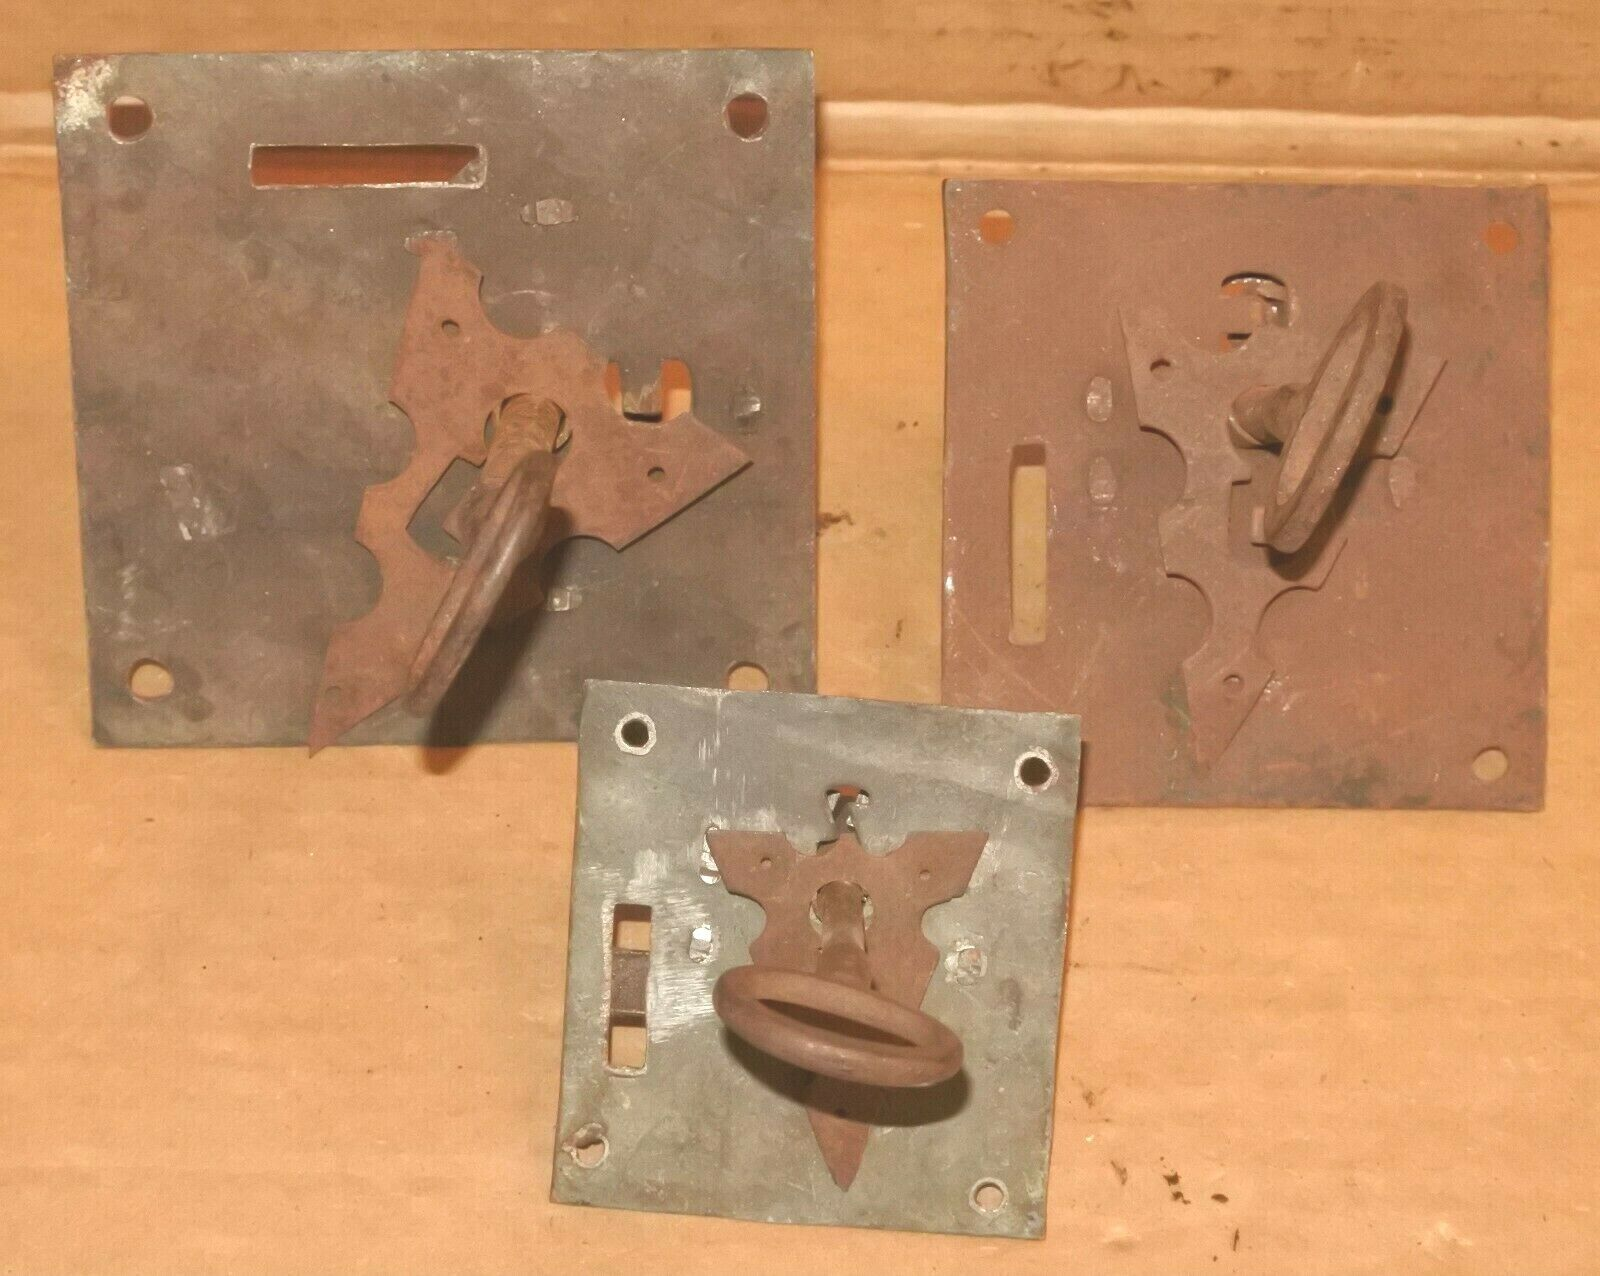 Lot Of Antique Old Skeleton Lock With Keys For Parts Project - $14.99